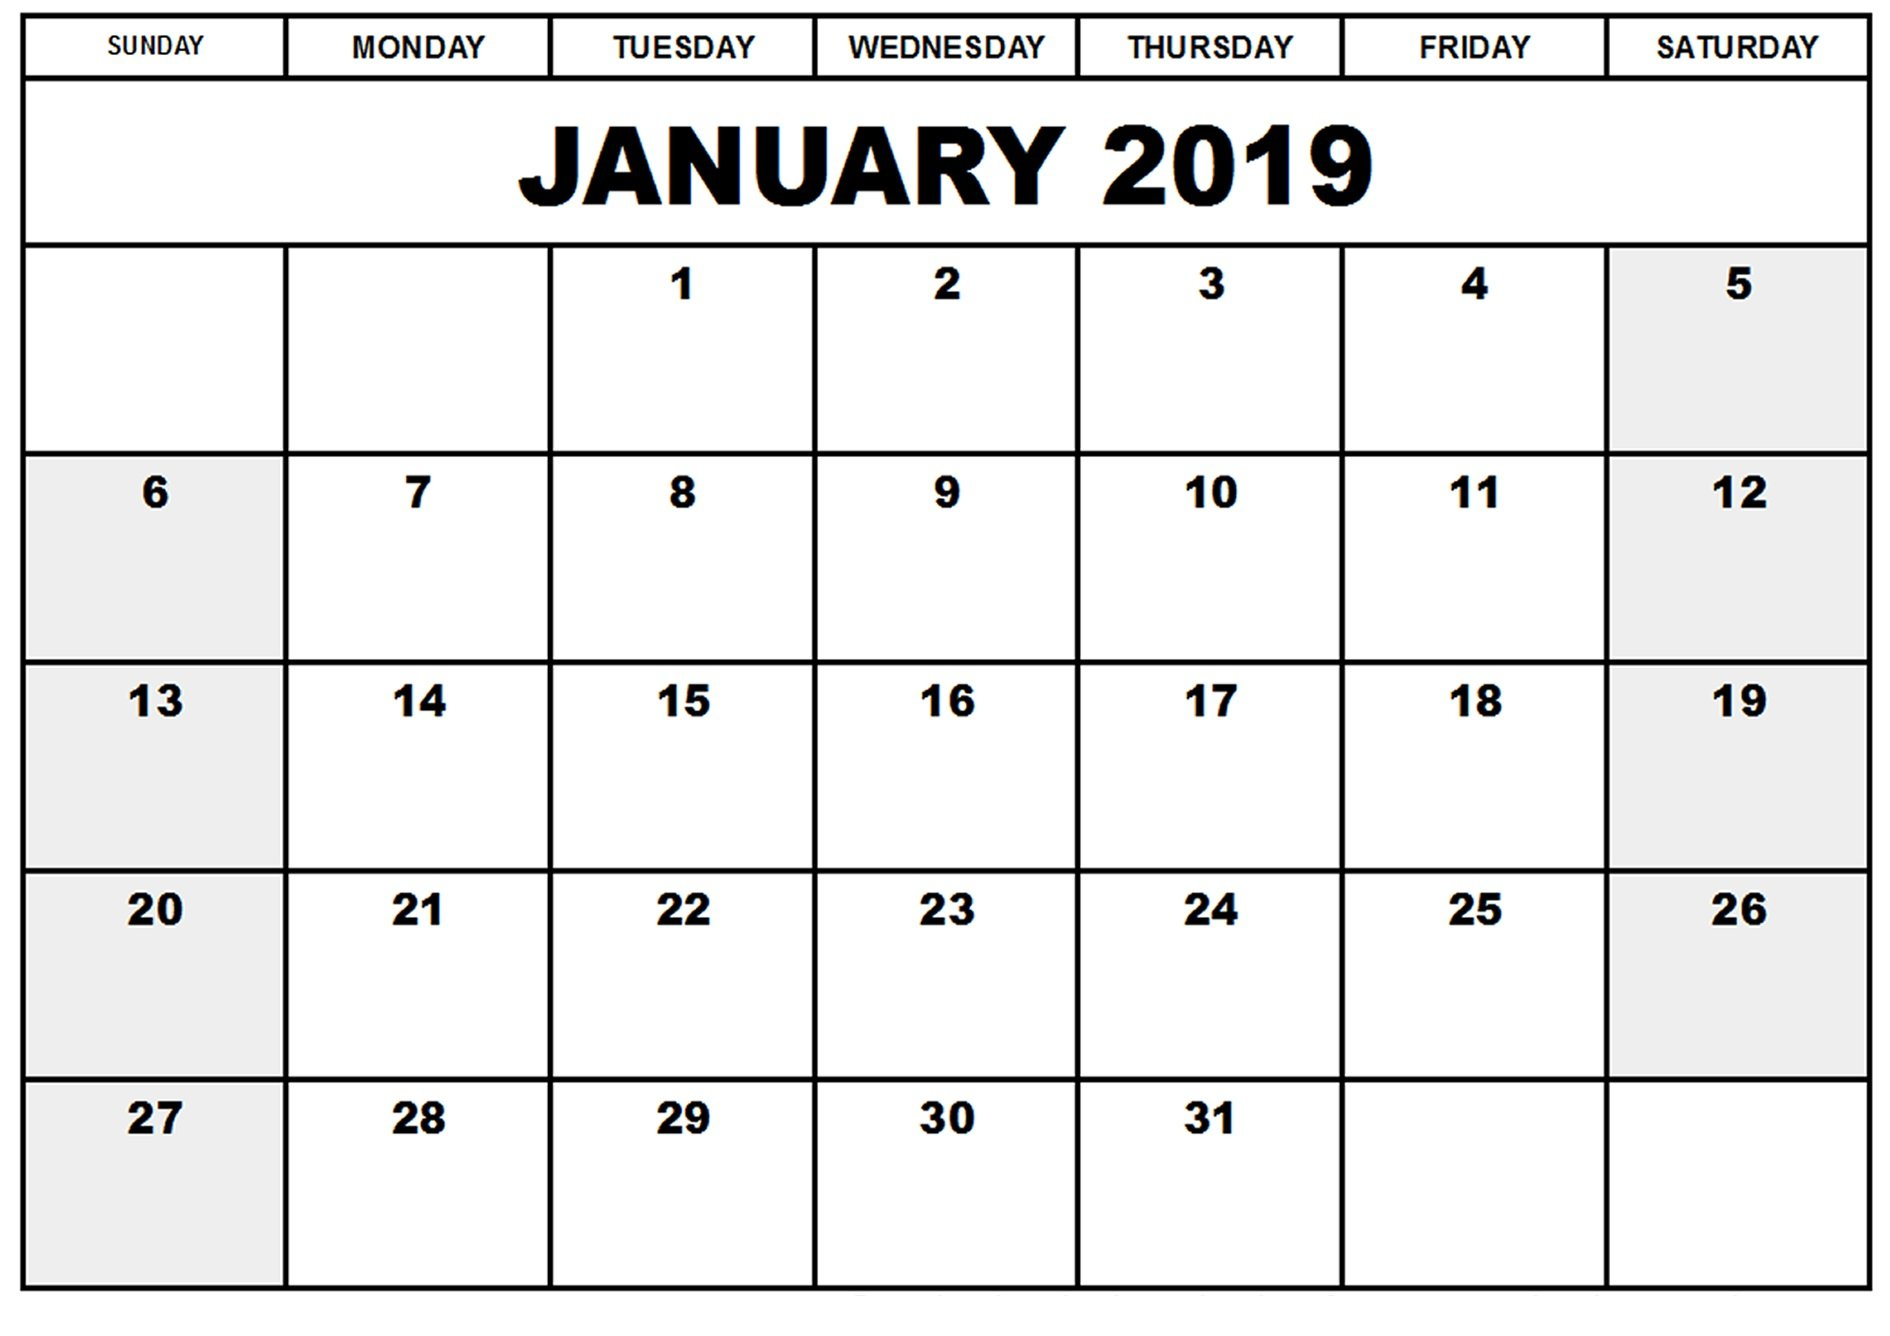 Free January 2019 Printable Calendar Templates - Calendar Blank Calendar That I Can Edit